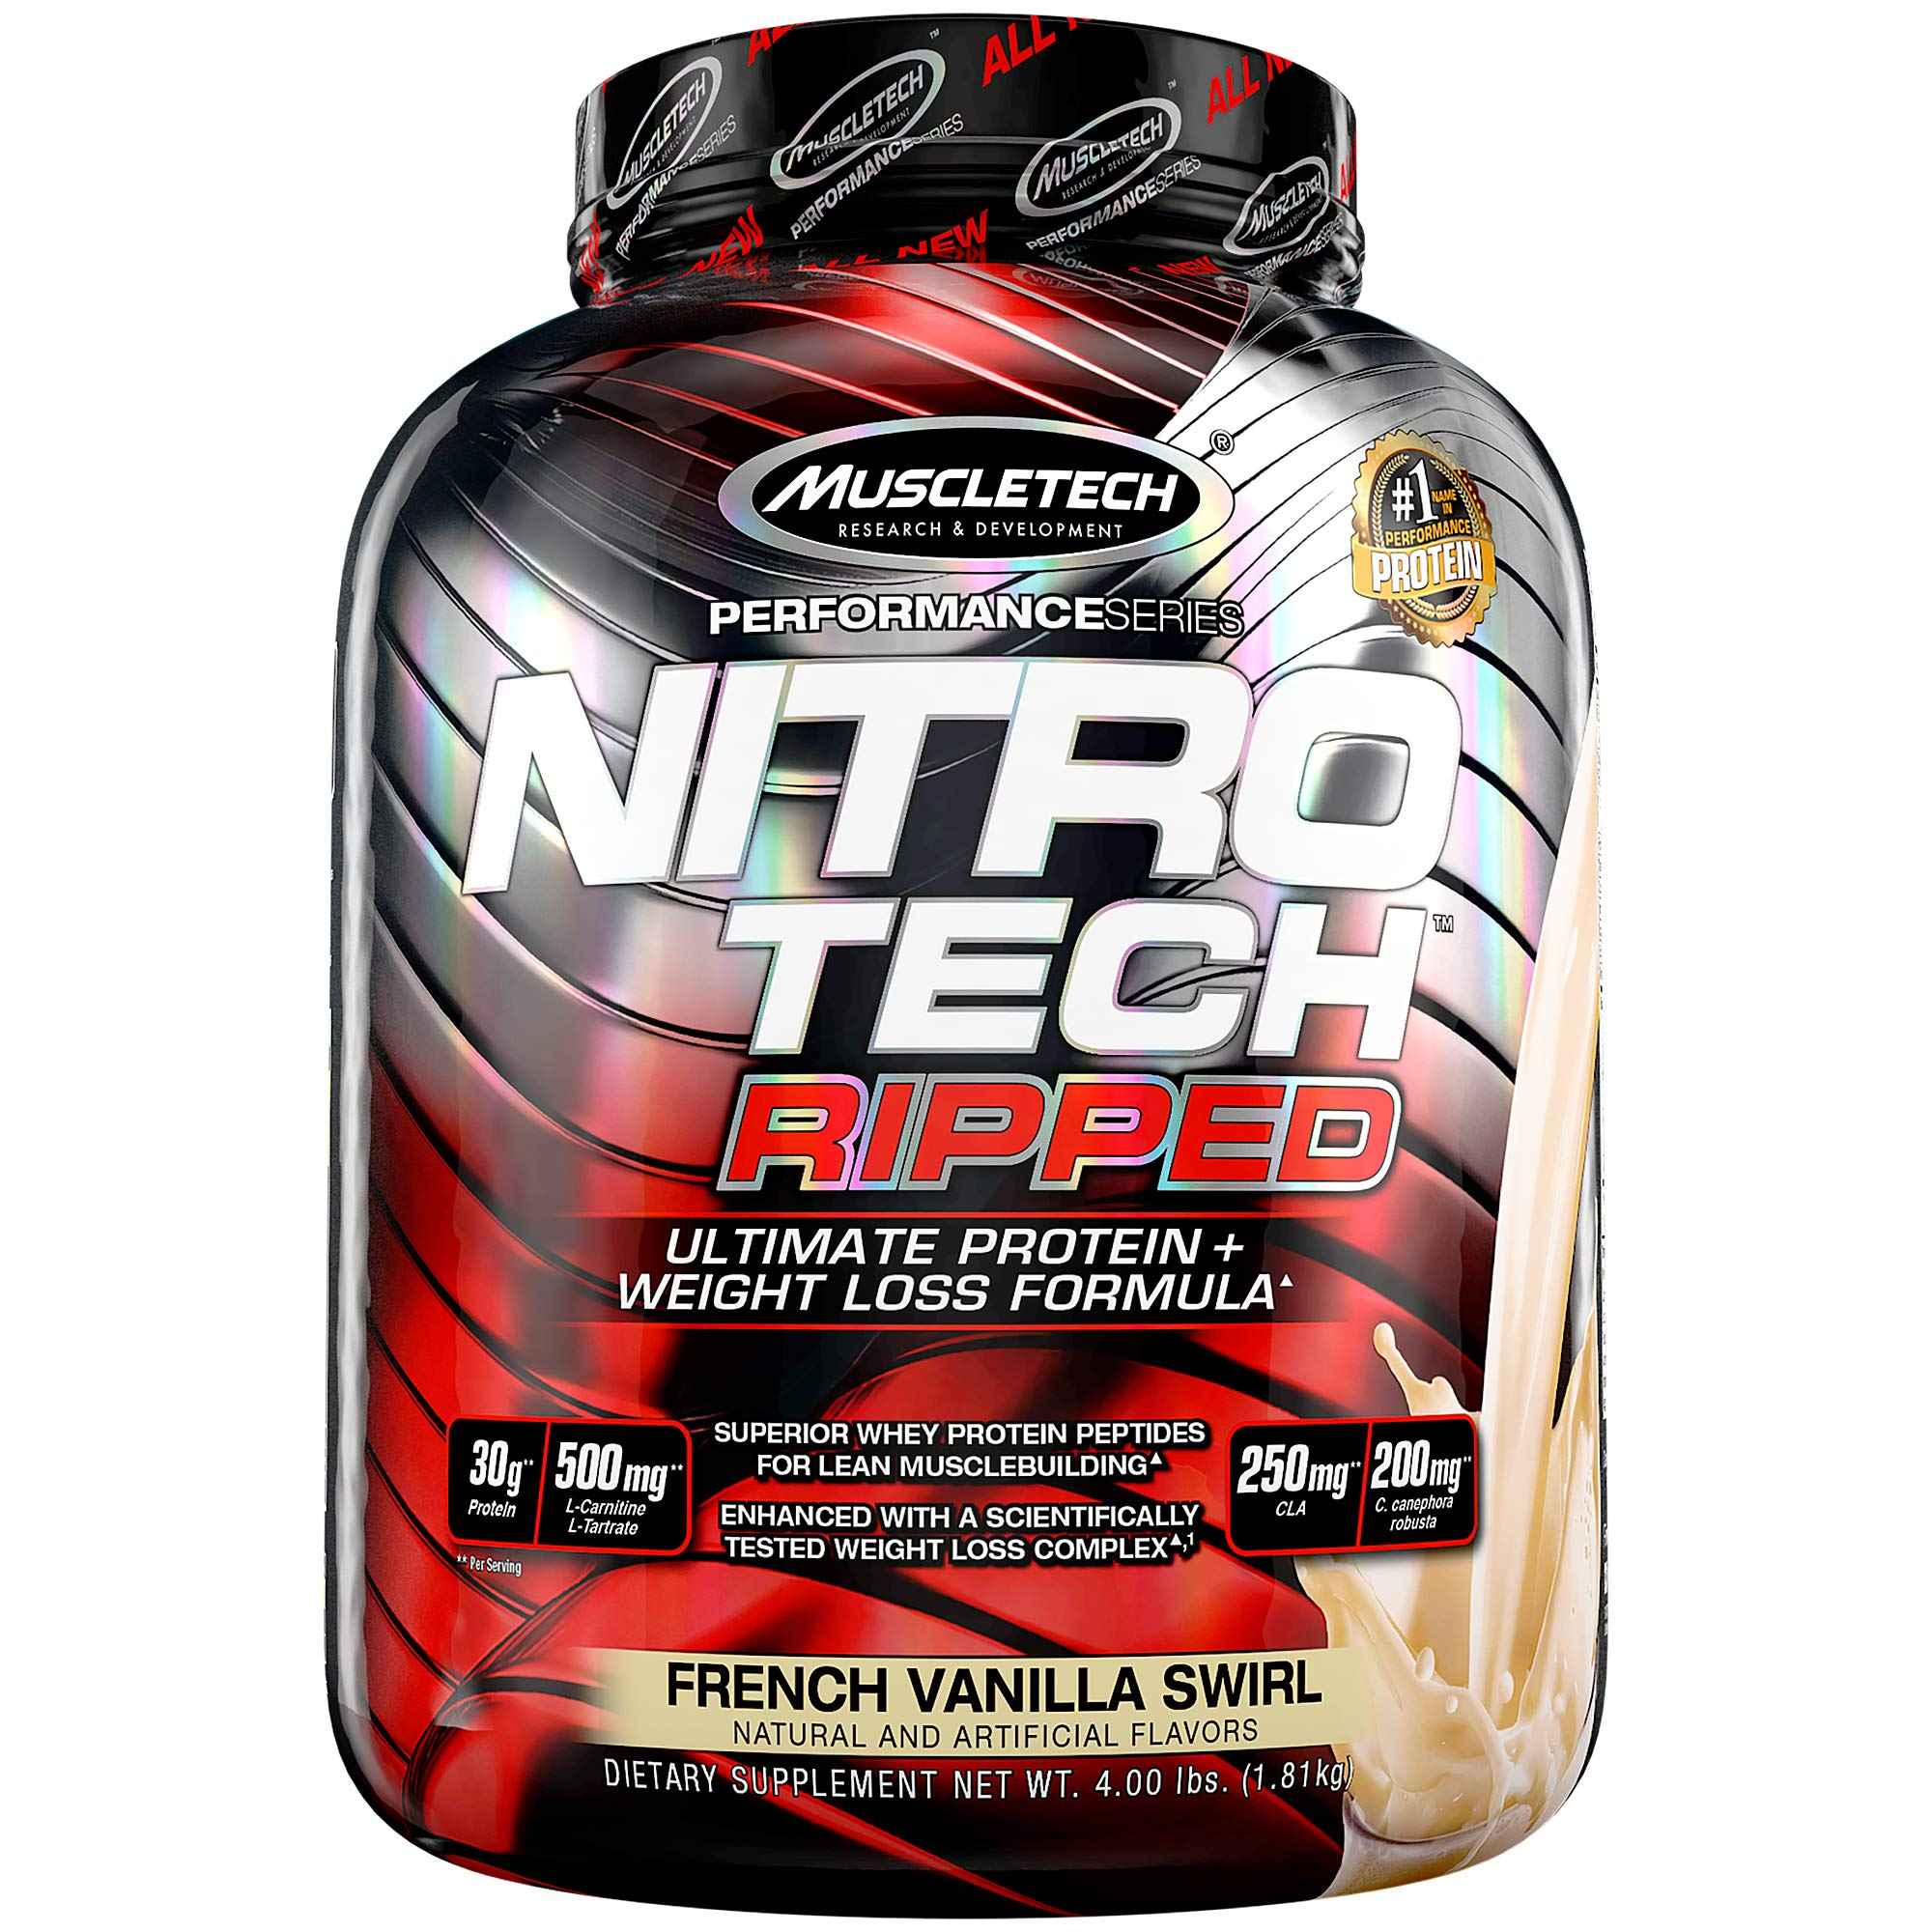 Muscletech Performance Series Nitrotech Ripped (Pre & Post-Workout, 30g Protein, 0 Creatine, 250g CLA, 200mg C. Canephora Robusta) – 4 lbs (1.81 kg) (French Vanilla Swirl)